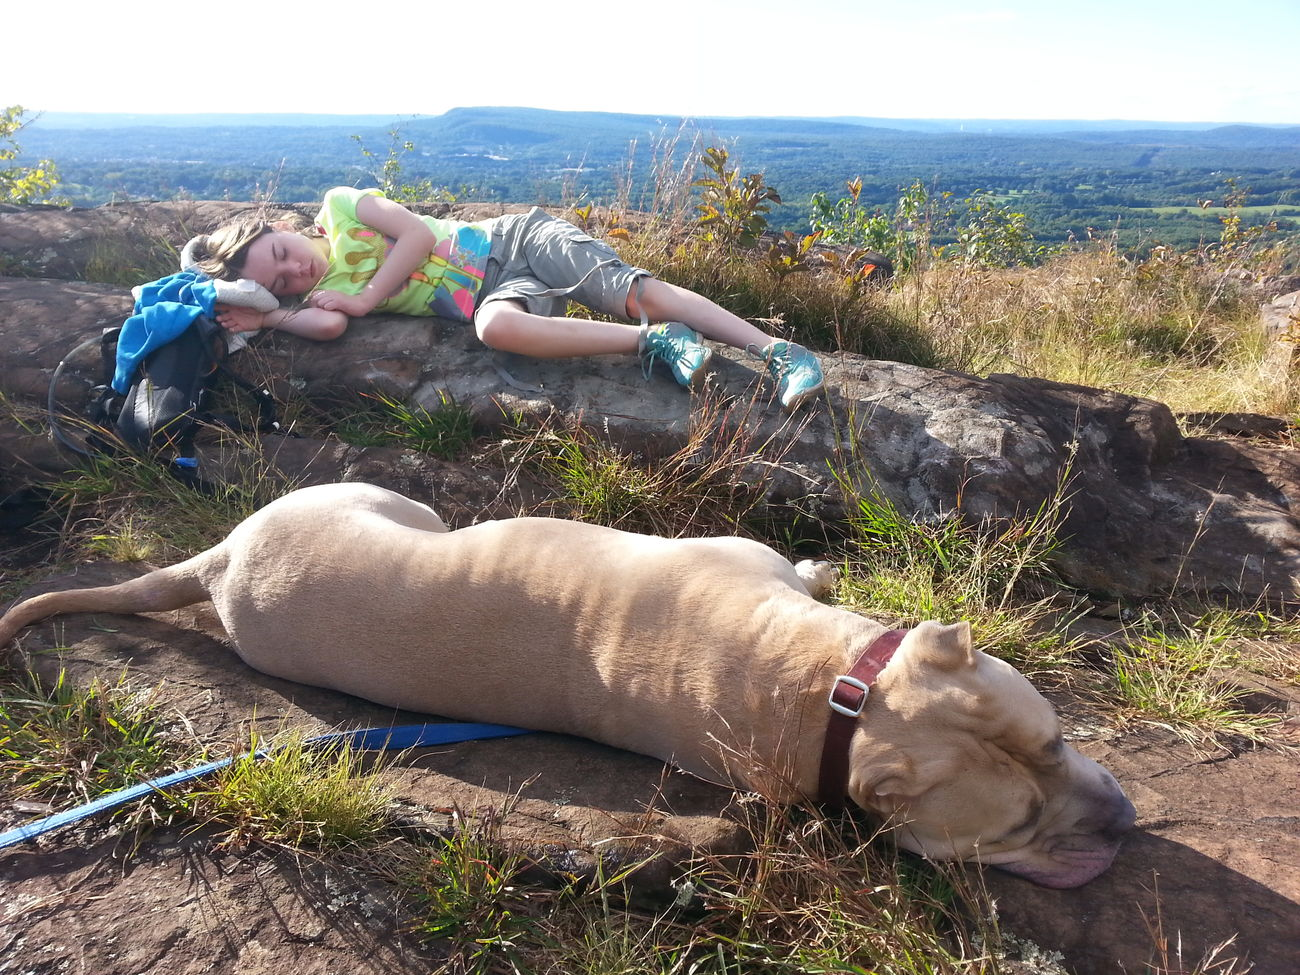 Relaxation Outdoors Getting Away From It All Lying Down Hiking Family American Bully Senic